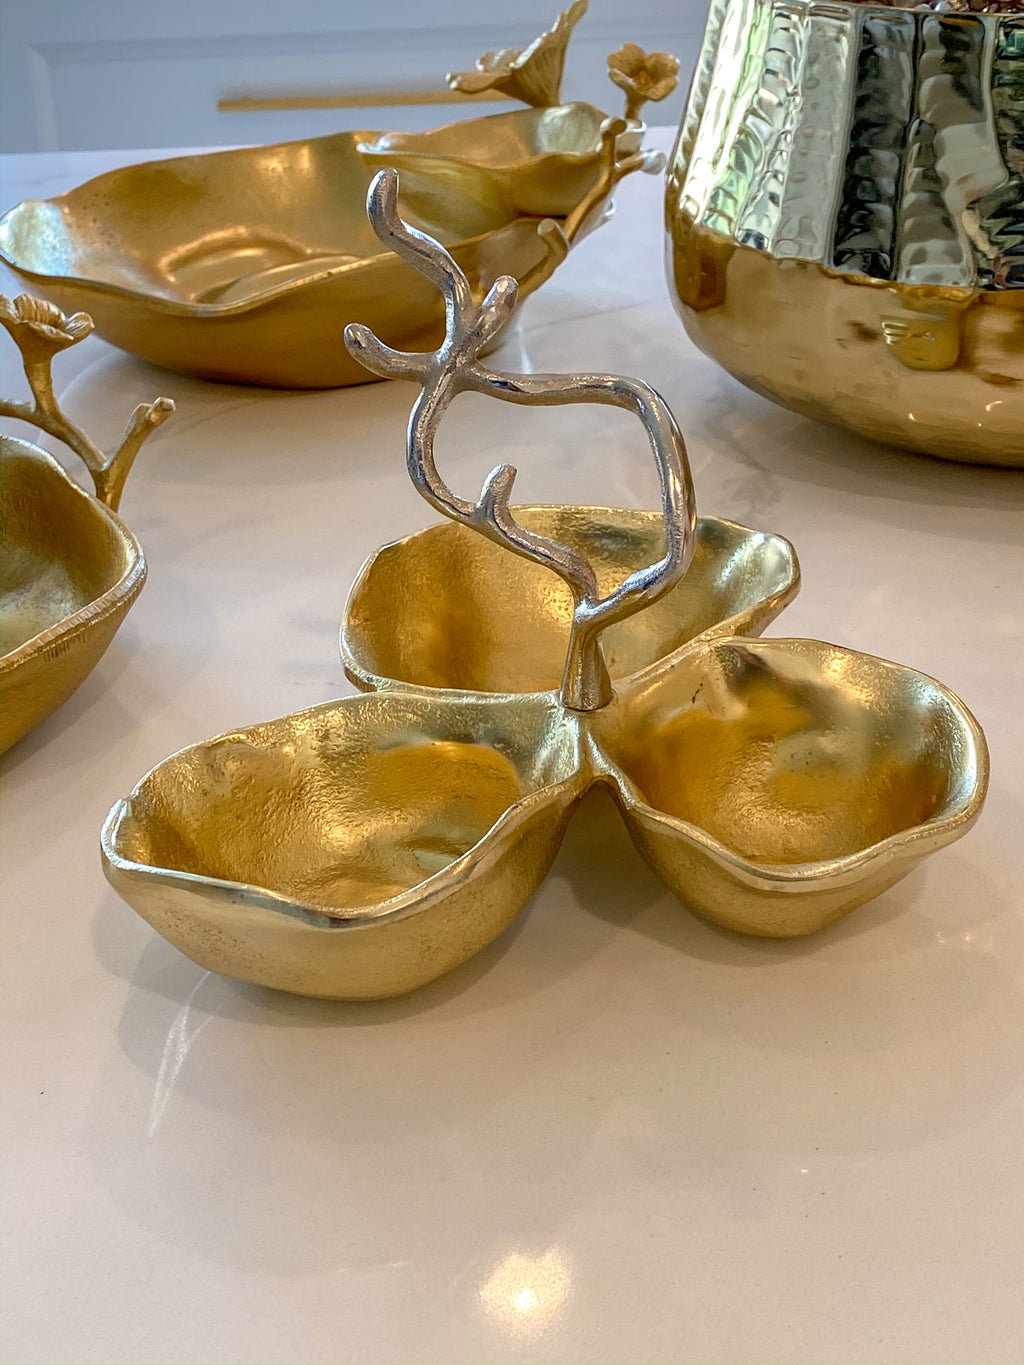 Gold Metal Snack Bowl with Silver Handle-Inspire Me! Home Decor